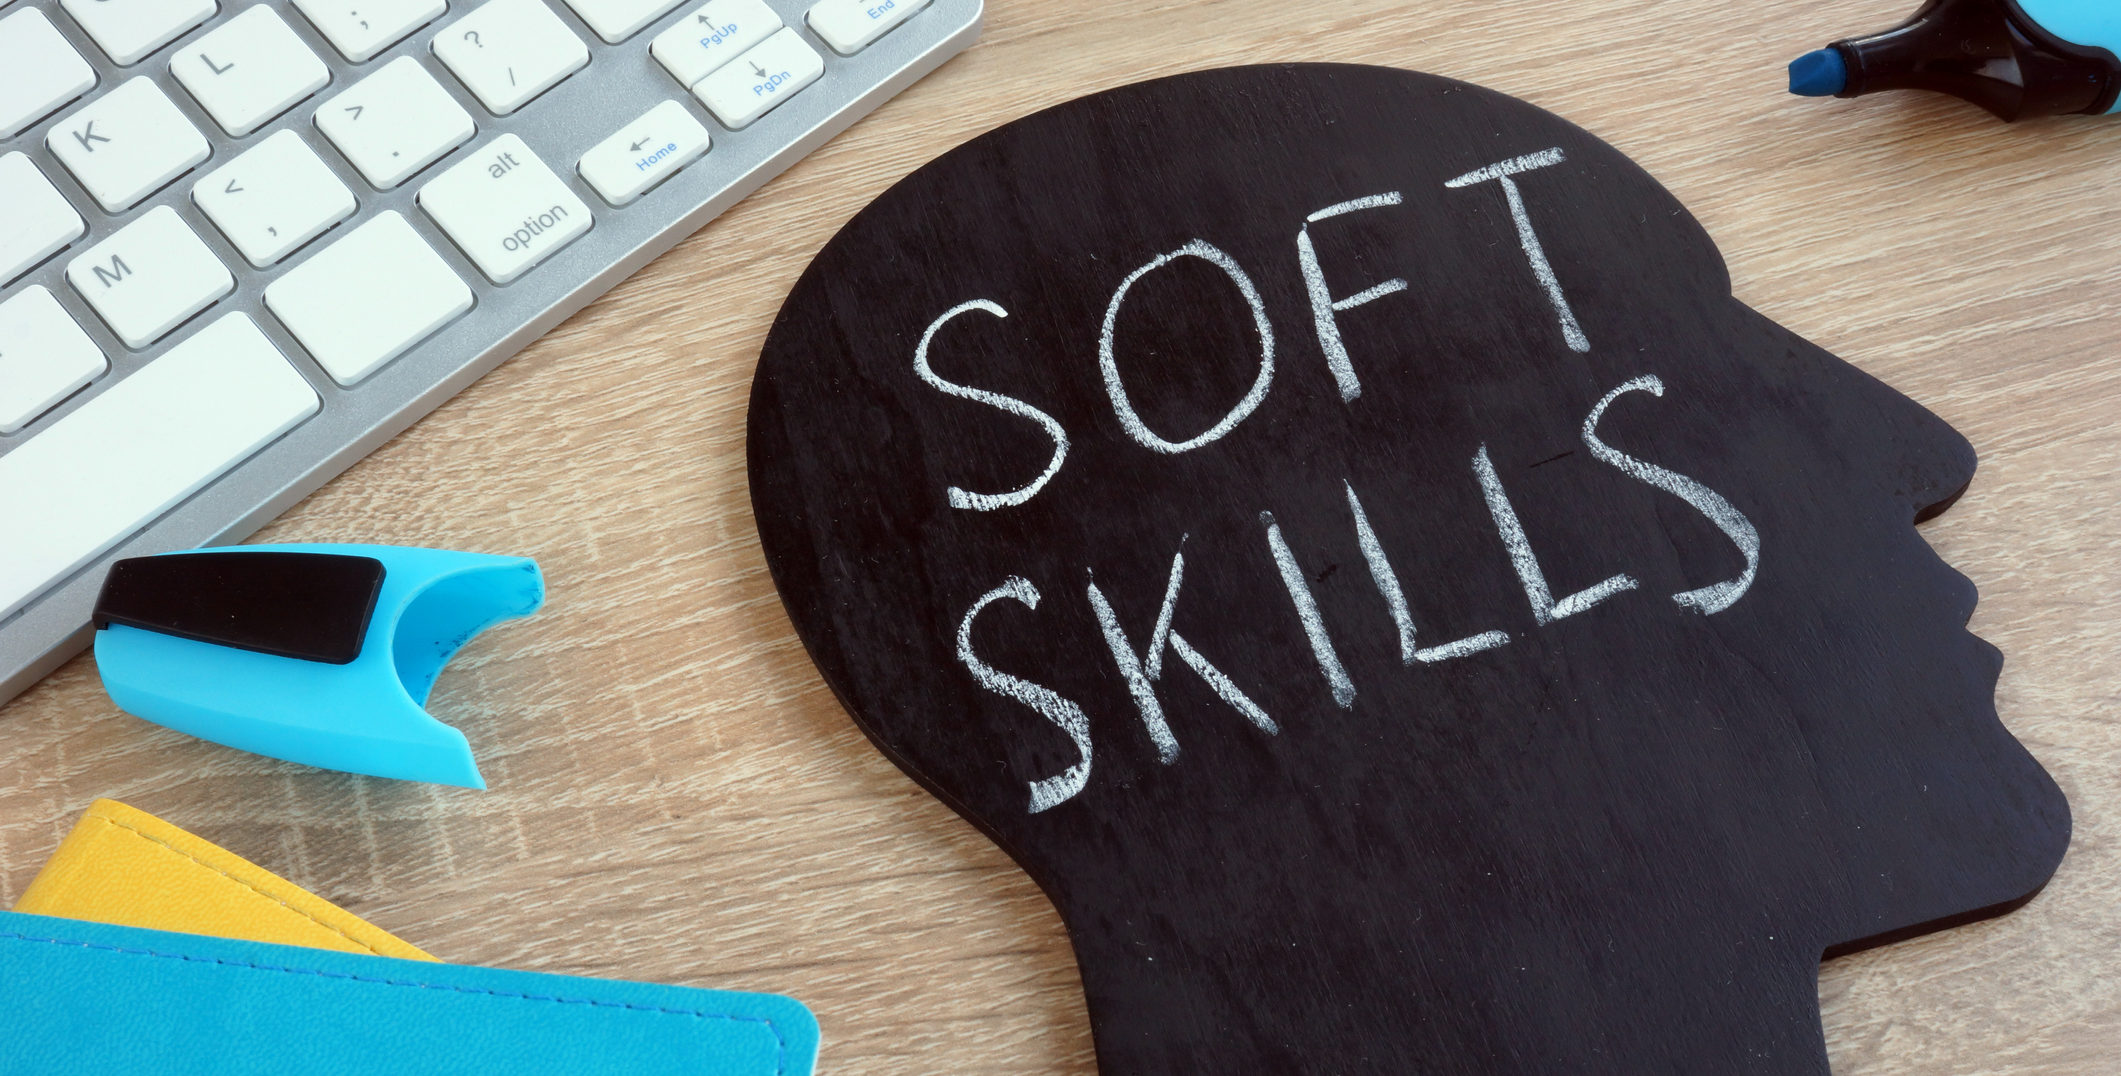 <h1>How to be employed in 2030</h1><h2>What skills employers will need in 10 years</h2>